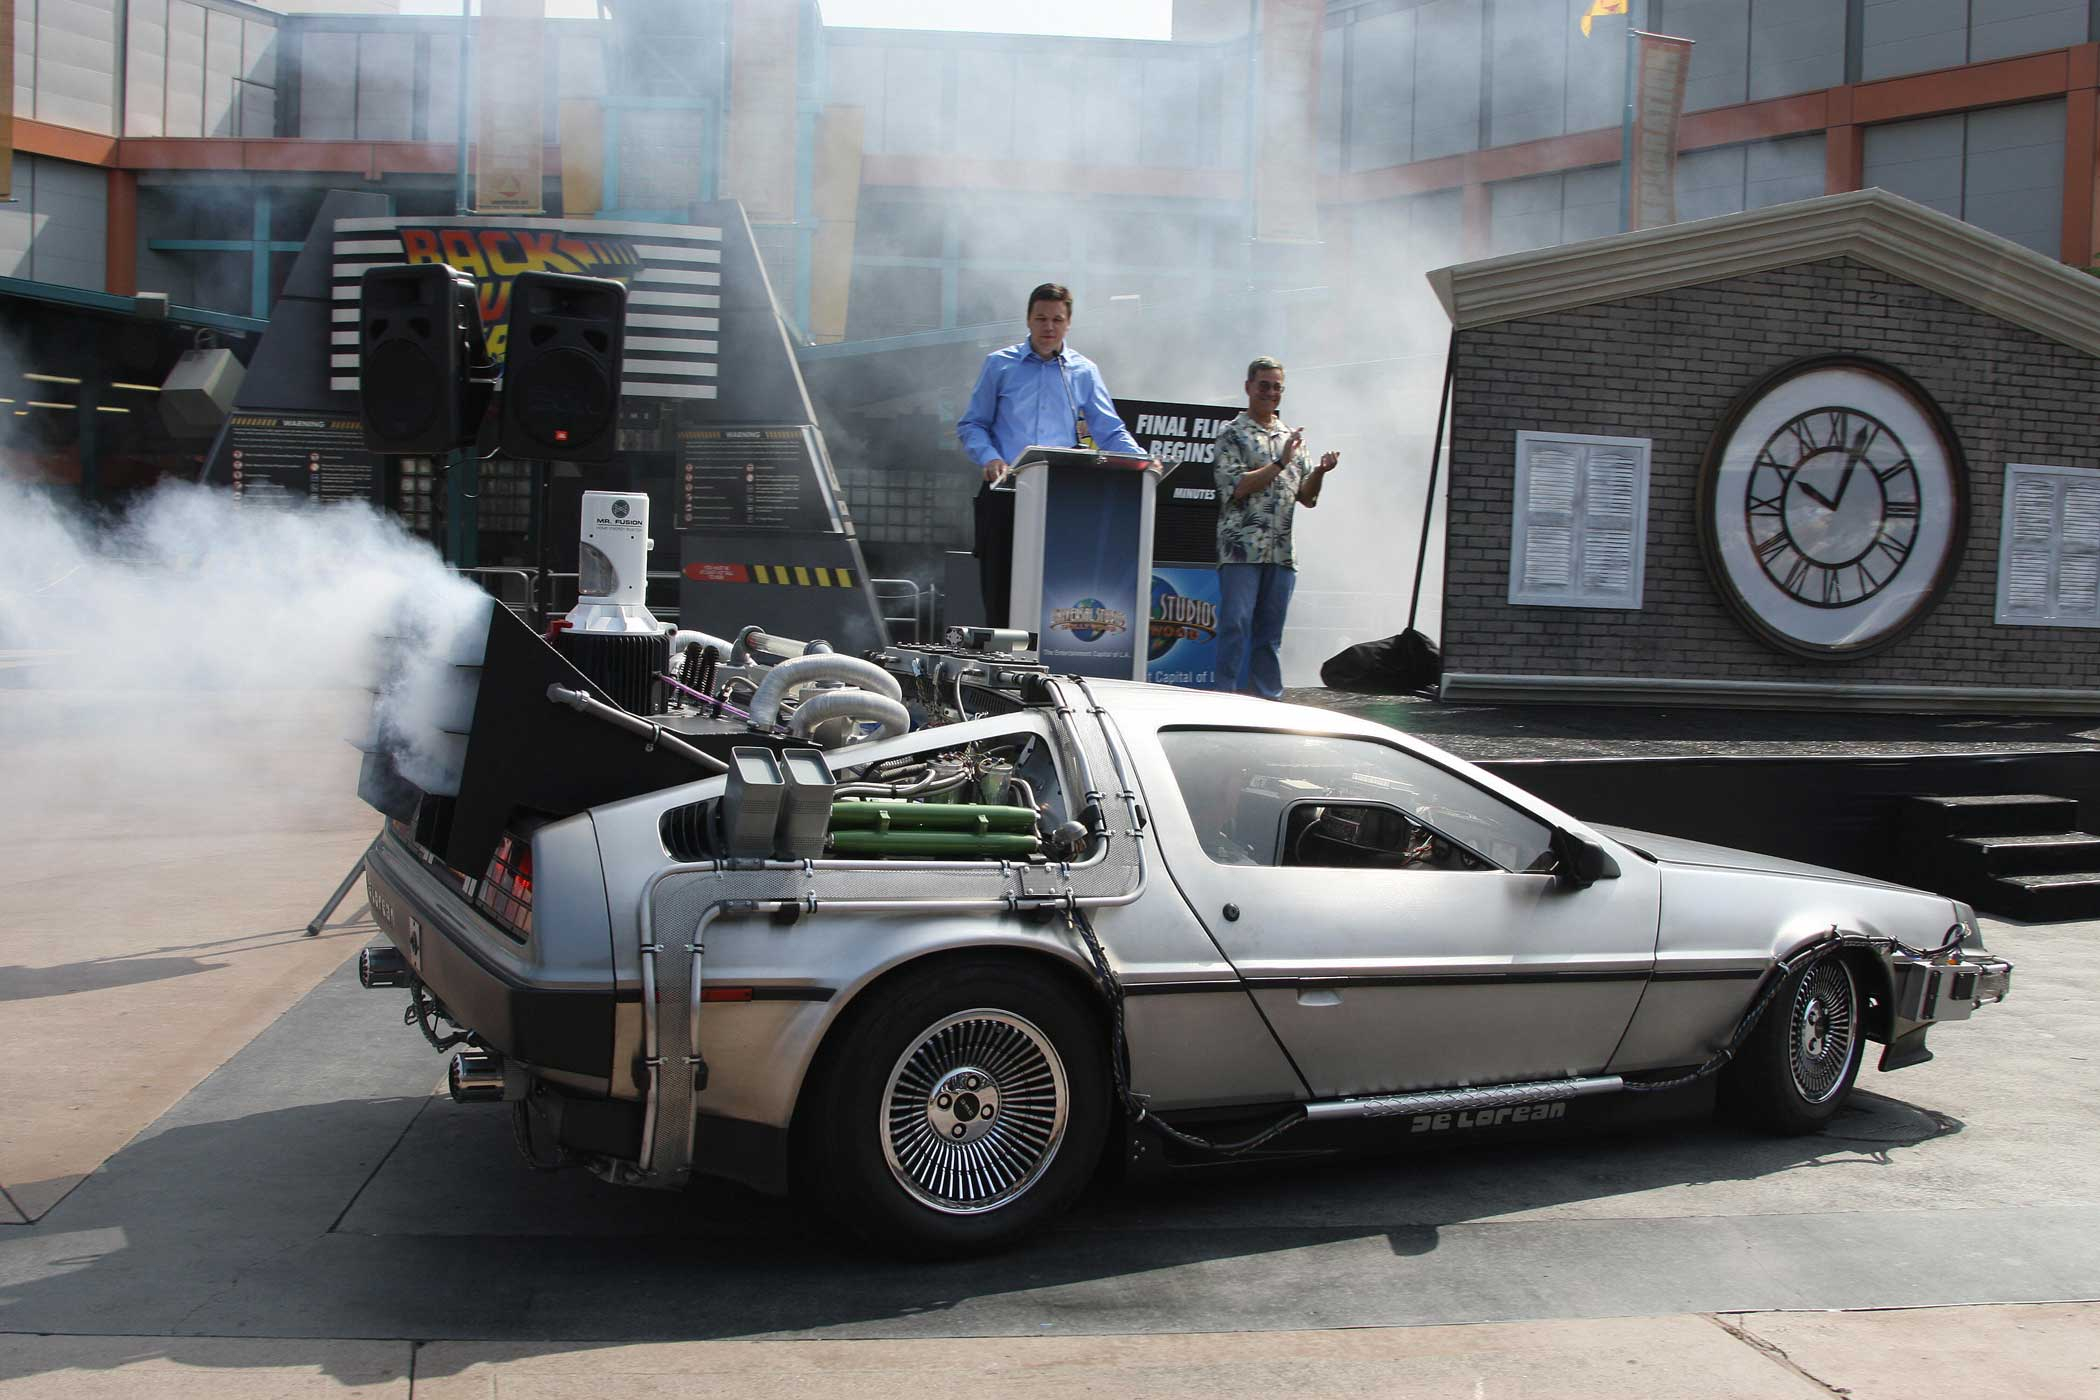 Actor Christopher Lloyd (in passenger seat) arrives in a DeLorean car at Universal Studios Hollywood's  Back to the Future - The Ride  in University City, California on Aug. 7, 2007.  Lloyd, who portrayed Doc Brown in the 1985 film  Back to the Future,  made the appearence to mark a month-long countdown to the closure of the 14-year-old ride.